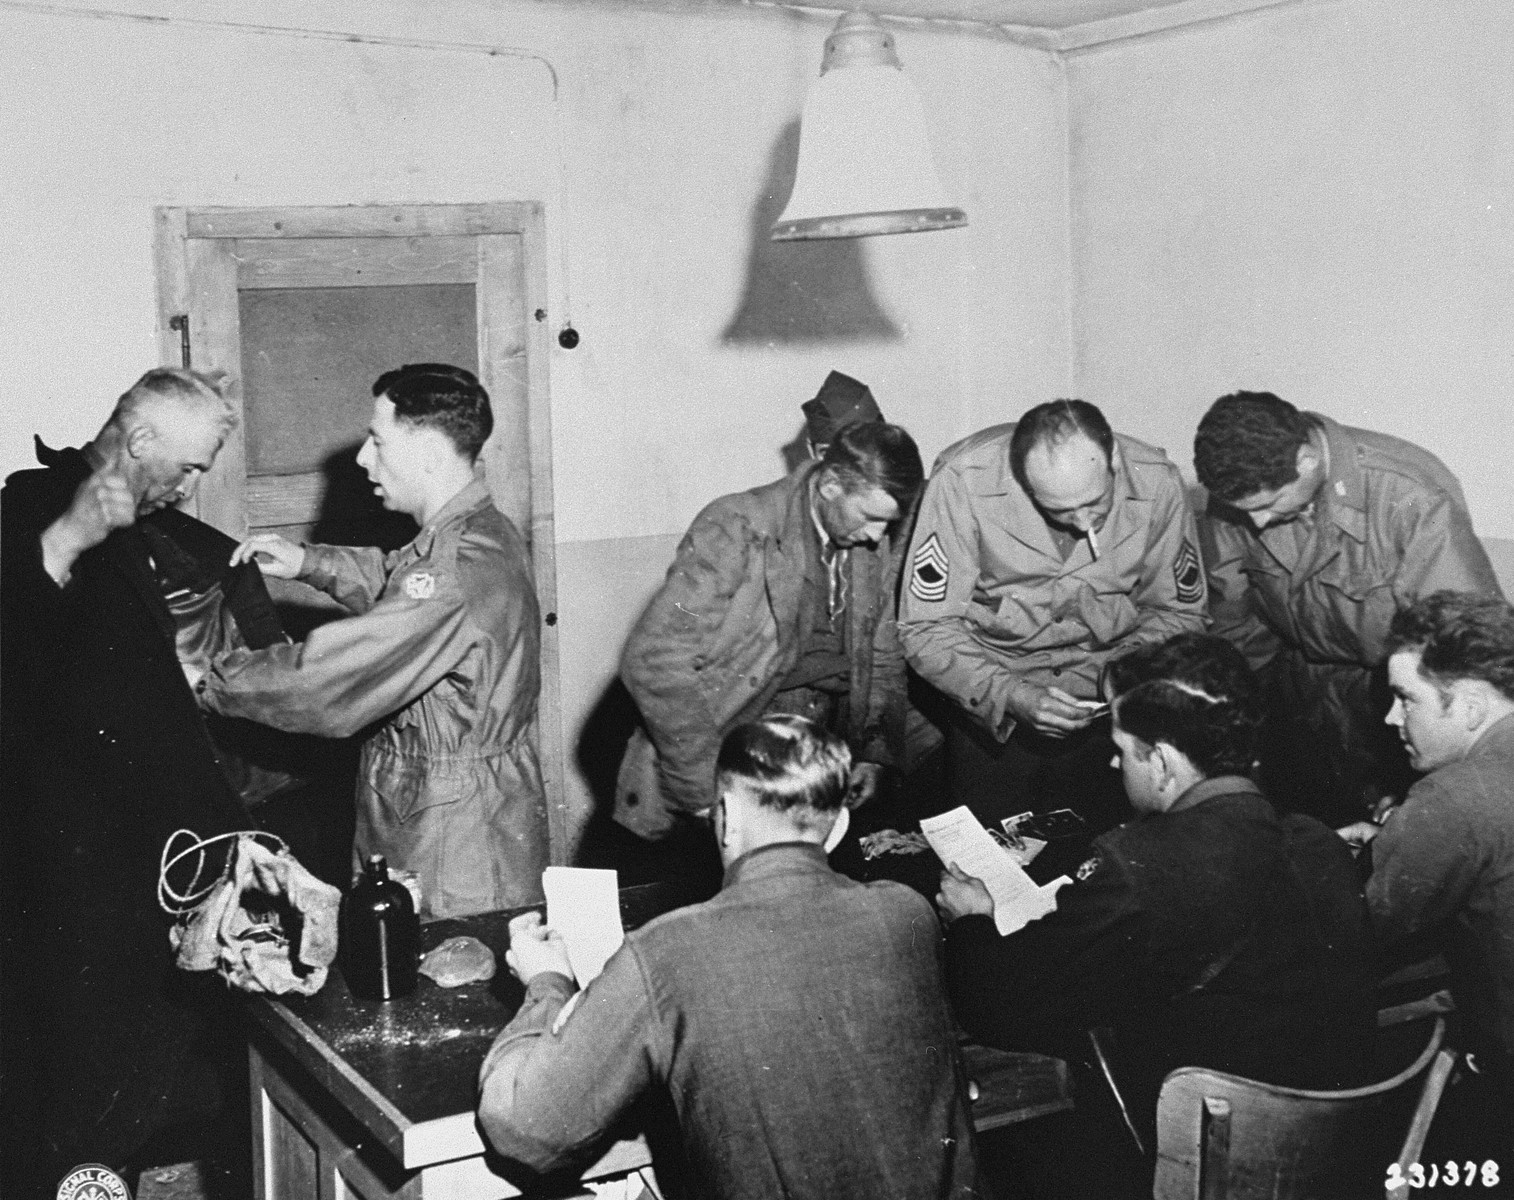 """U.S. troops search new German prisoners upon their arrival at the internment camp at Recklinghausen established by the U.S. Ninth Army.  When U.S. Ninth Army troops captured the concentration camp for Soviet civilians located near Recklinghausen, Germany, they converted it into a separation center for prisoners of war and war criminals.  After the first German prisoners arrived at the camp they were sent to the interrogation department, which was supervised by Captain Harold Puttfer and Lieutenant H. Goodman.  The camp had three sections called """"cages.""""  One of these was for women, another for persons incarcerated for minor offenses, and the third for hardened criminals.  All three sections were filled to capacity, totalling 20,000 prisoners."""